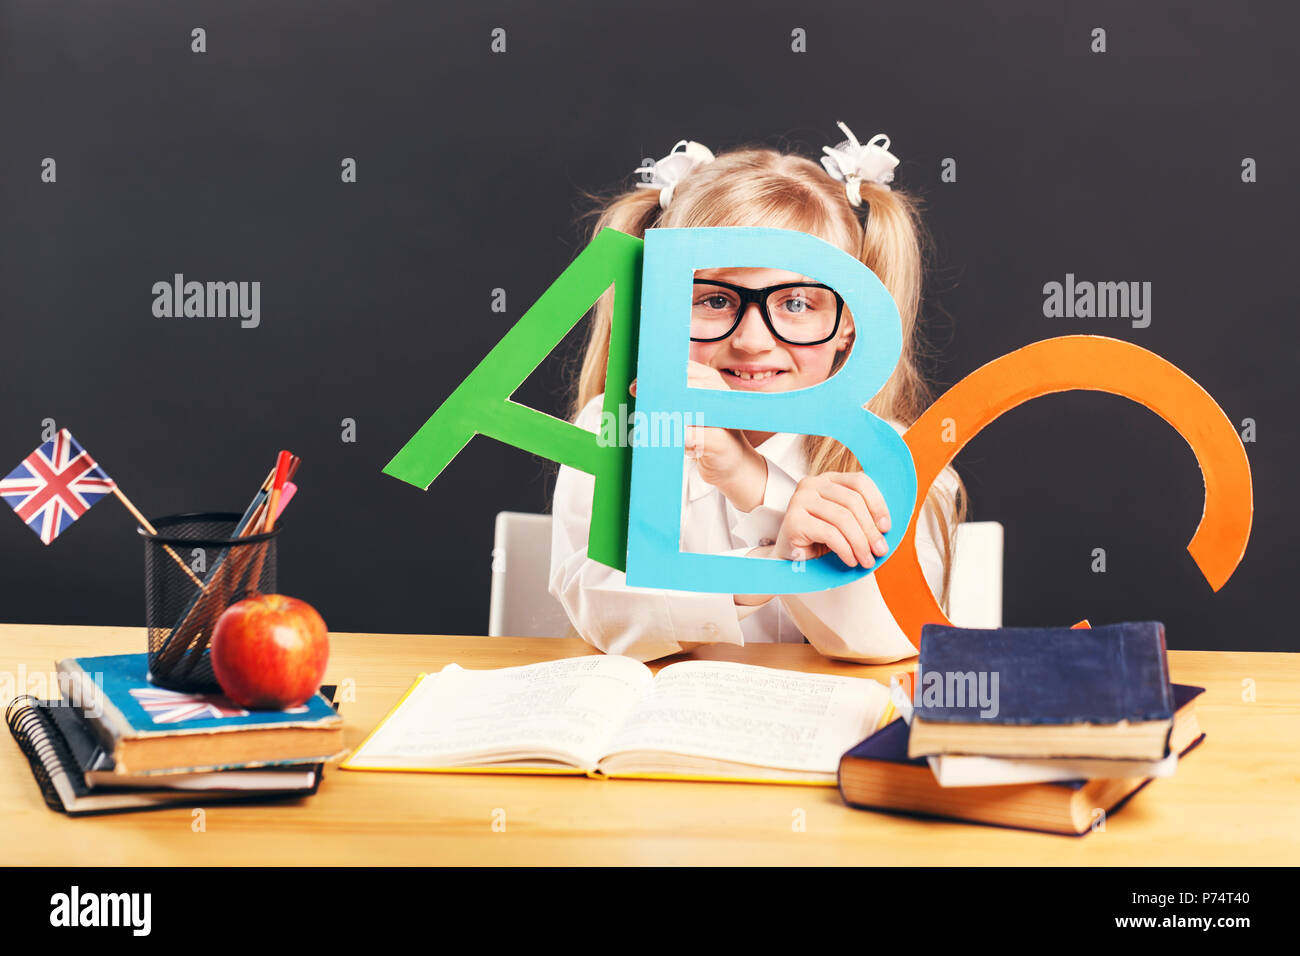 Young pupil girl wears smart eyeglasses holding colorful letters while learning English language with book before dark background - Stock Image